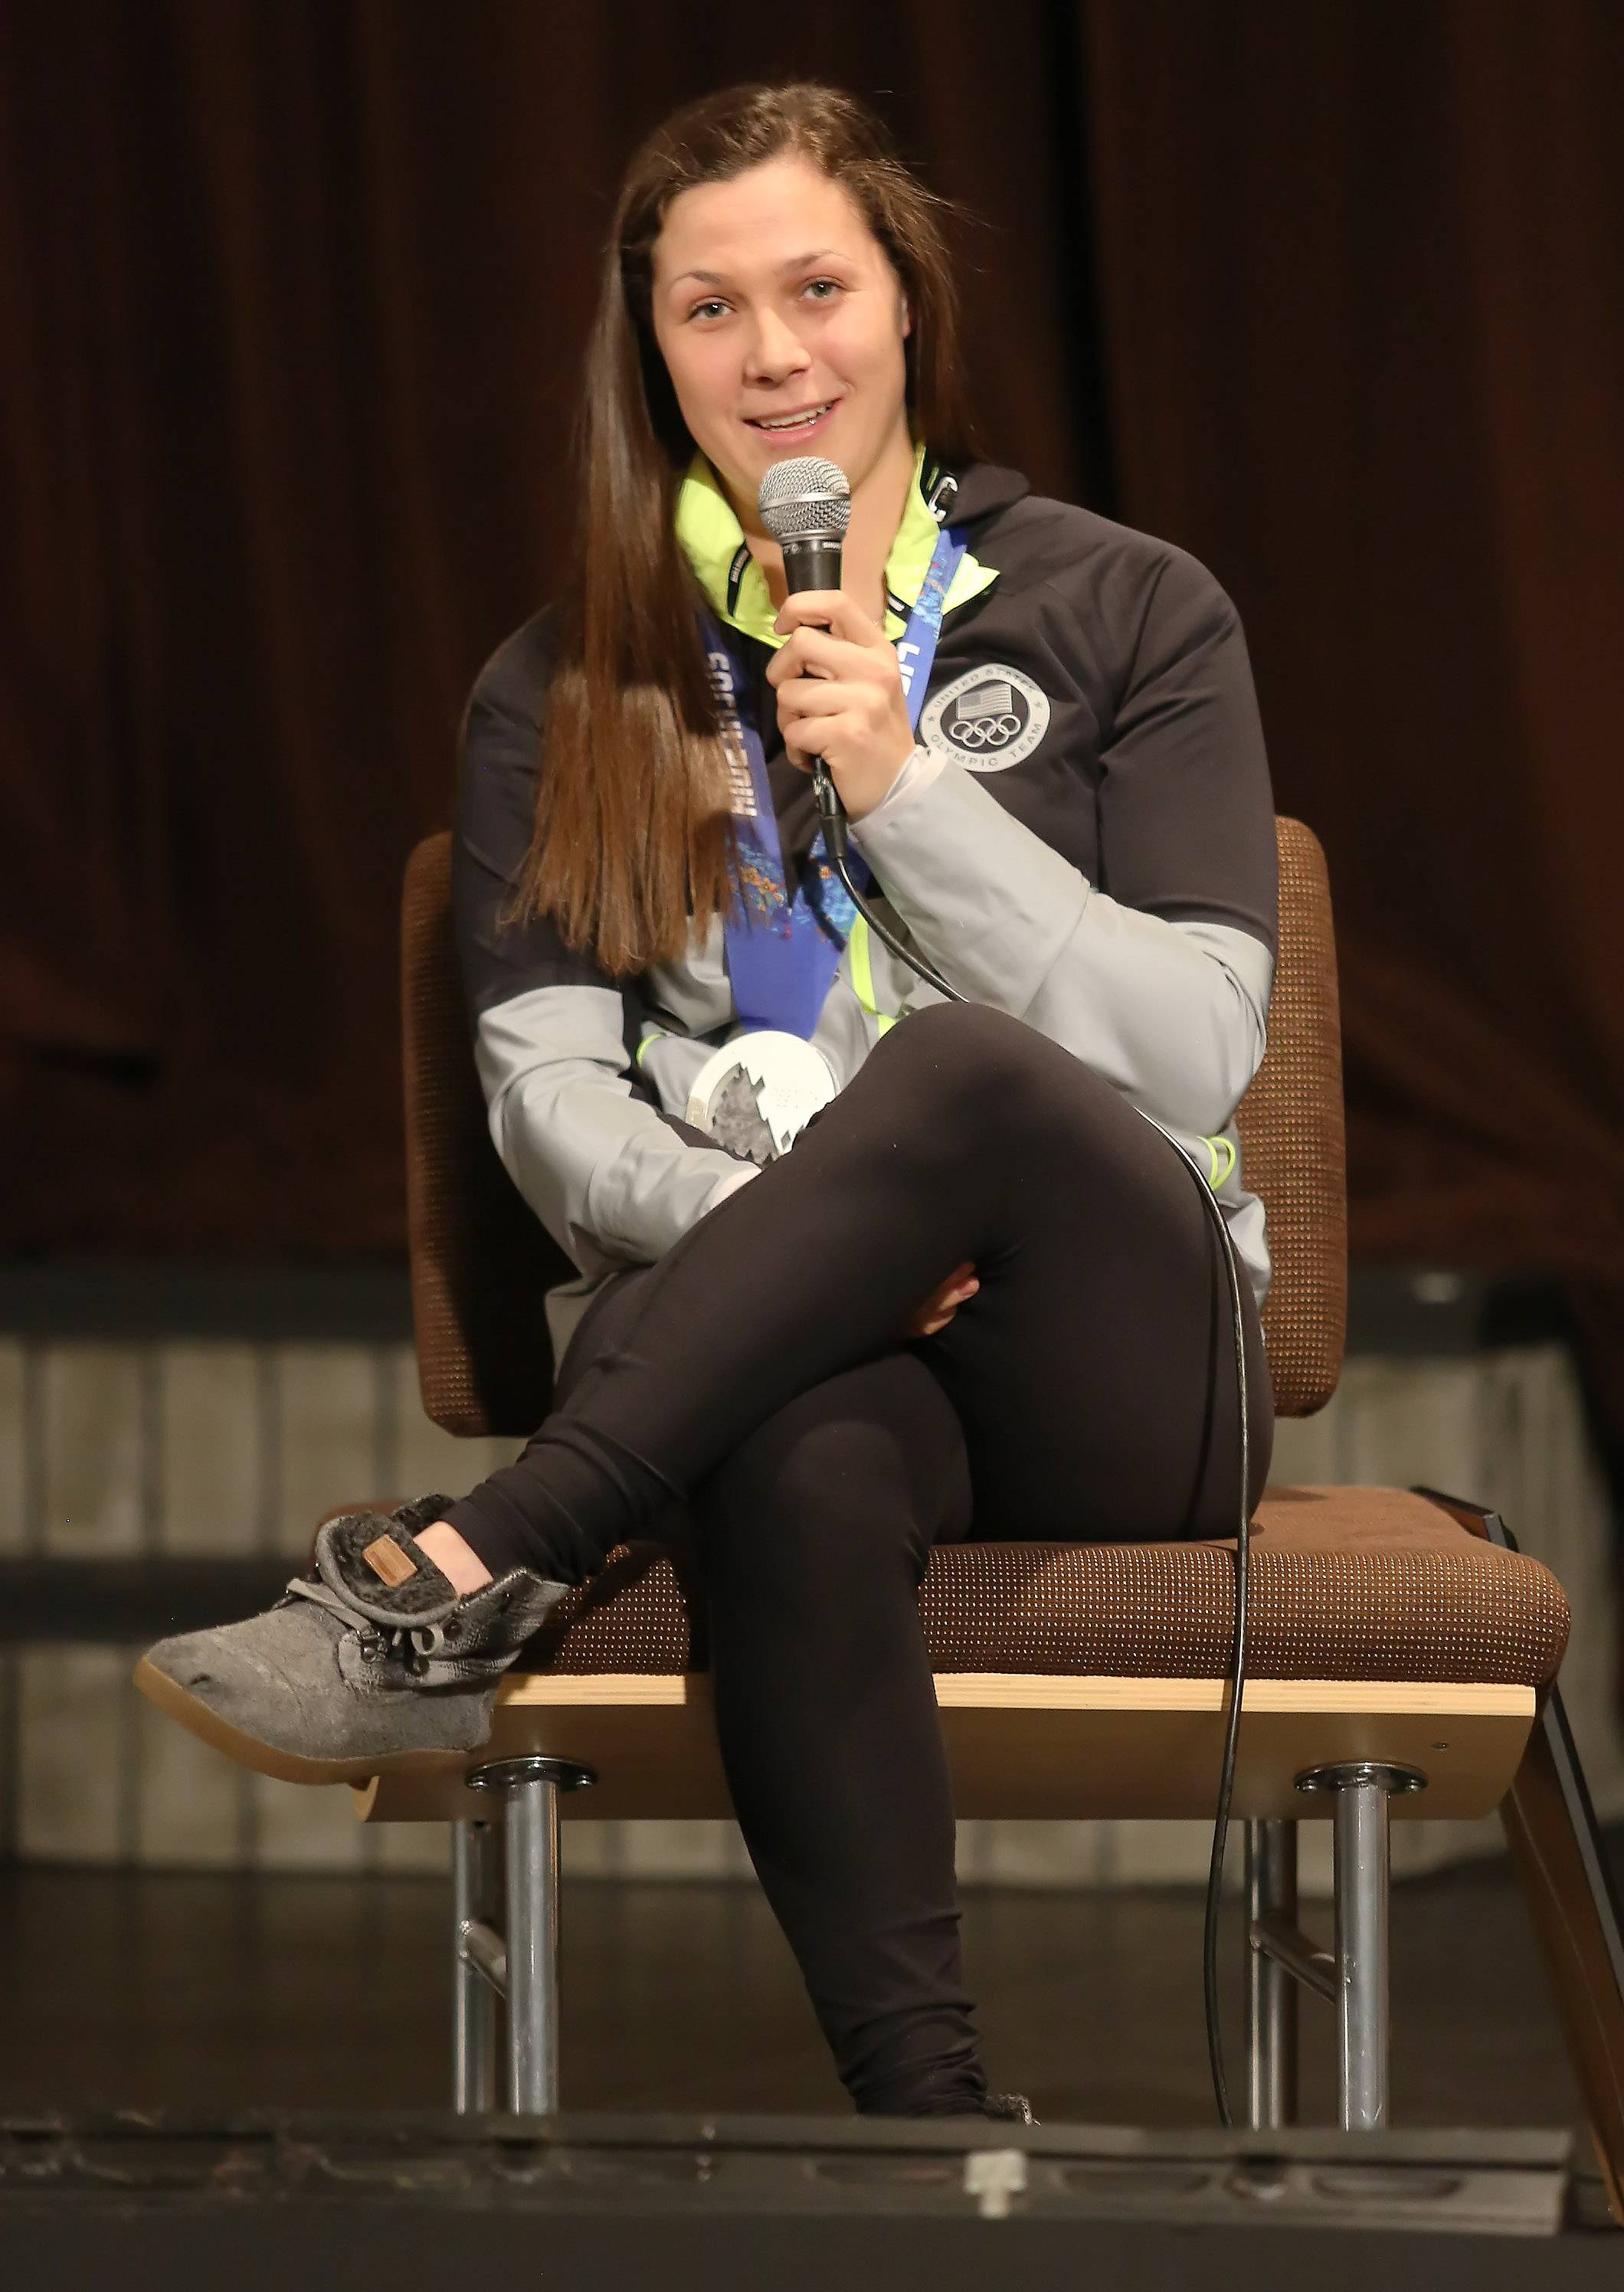 Olympic silver medalist Megan Bozek met with students and teachers Wednesday at Stevenson High School in Lincolnshire. The Stevenson graduate was a member of the U.S. women's ice hockey team in the 2014 Sochi Winter Olympics.